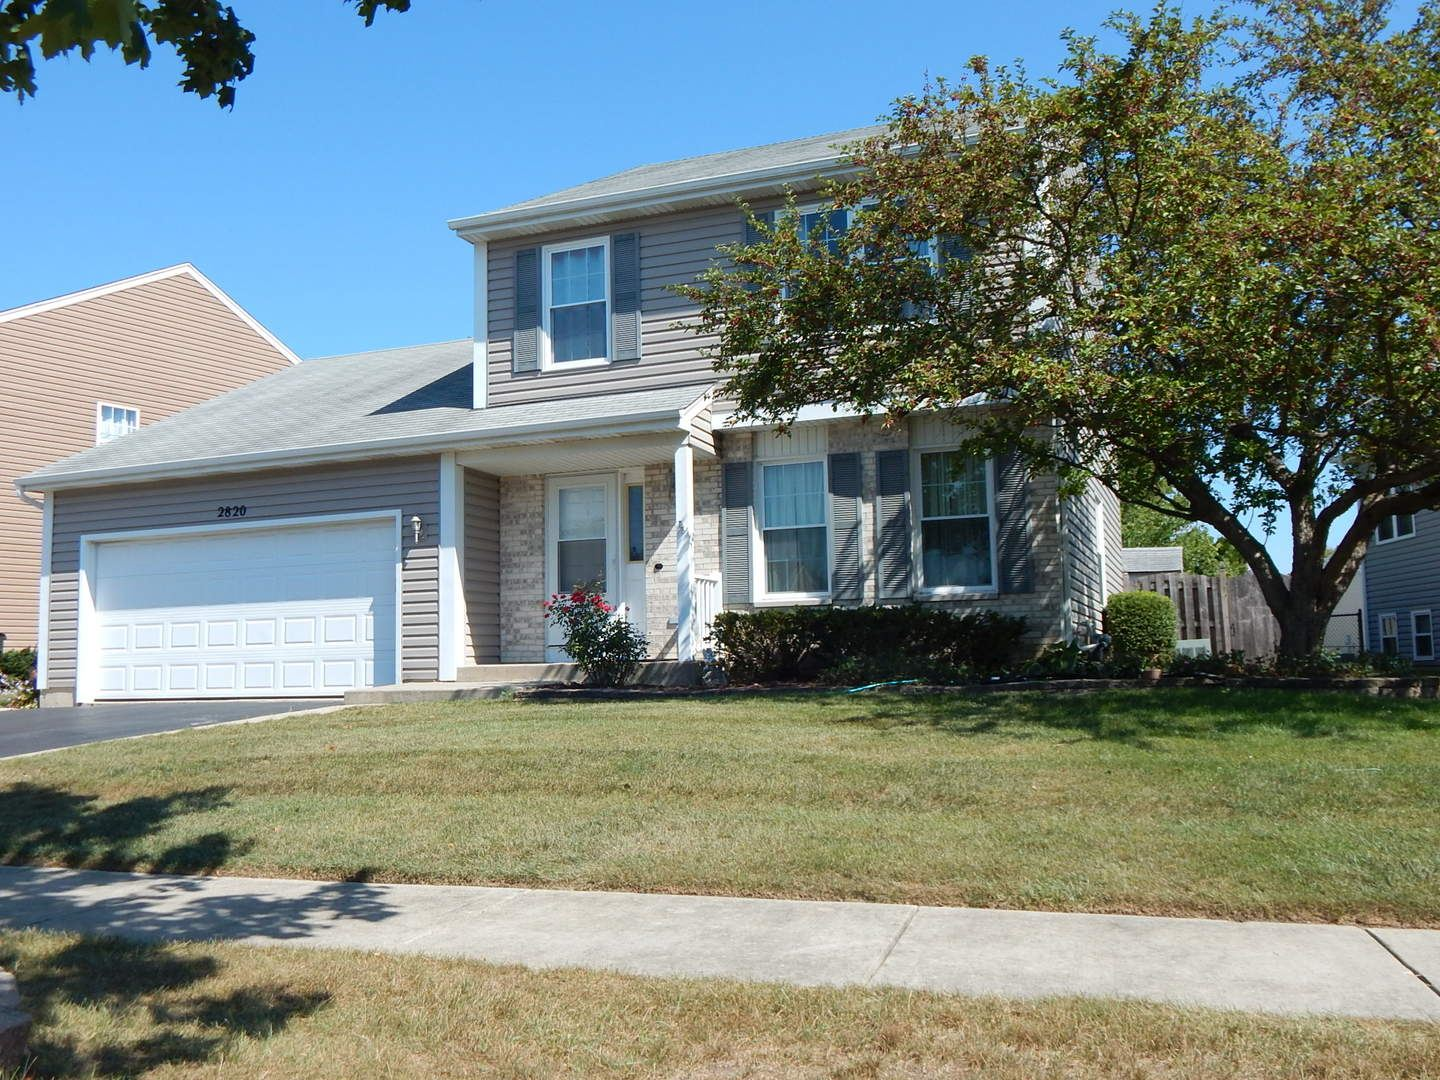 2820 Briarcliff Lane, Lake in the Hills, IL 60156 - #: 11221582